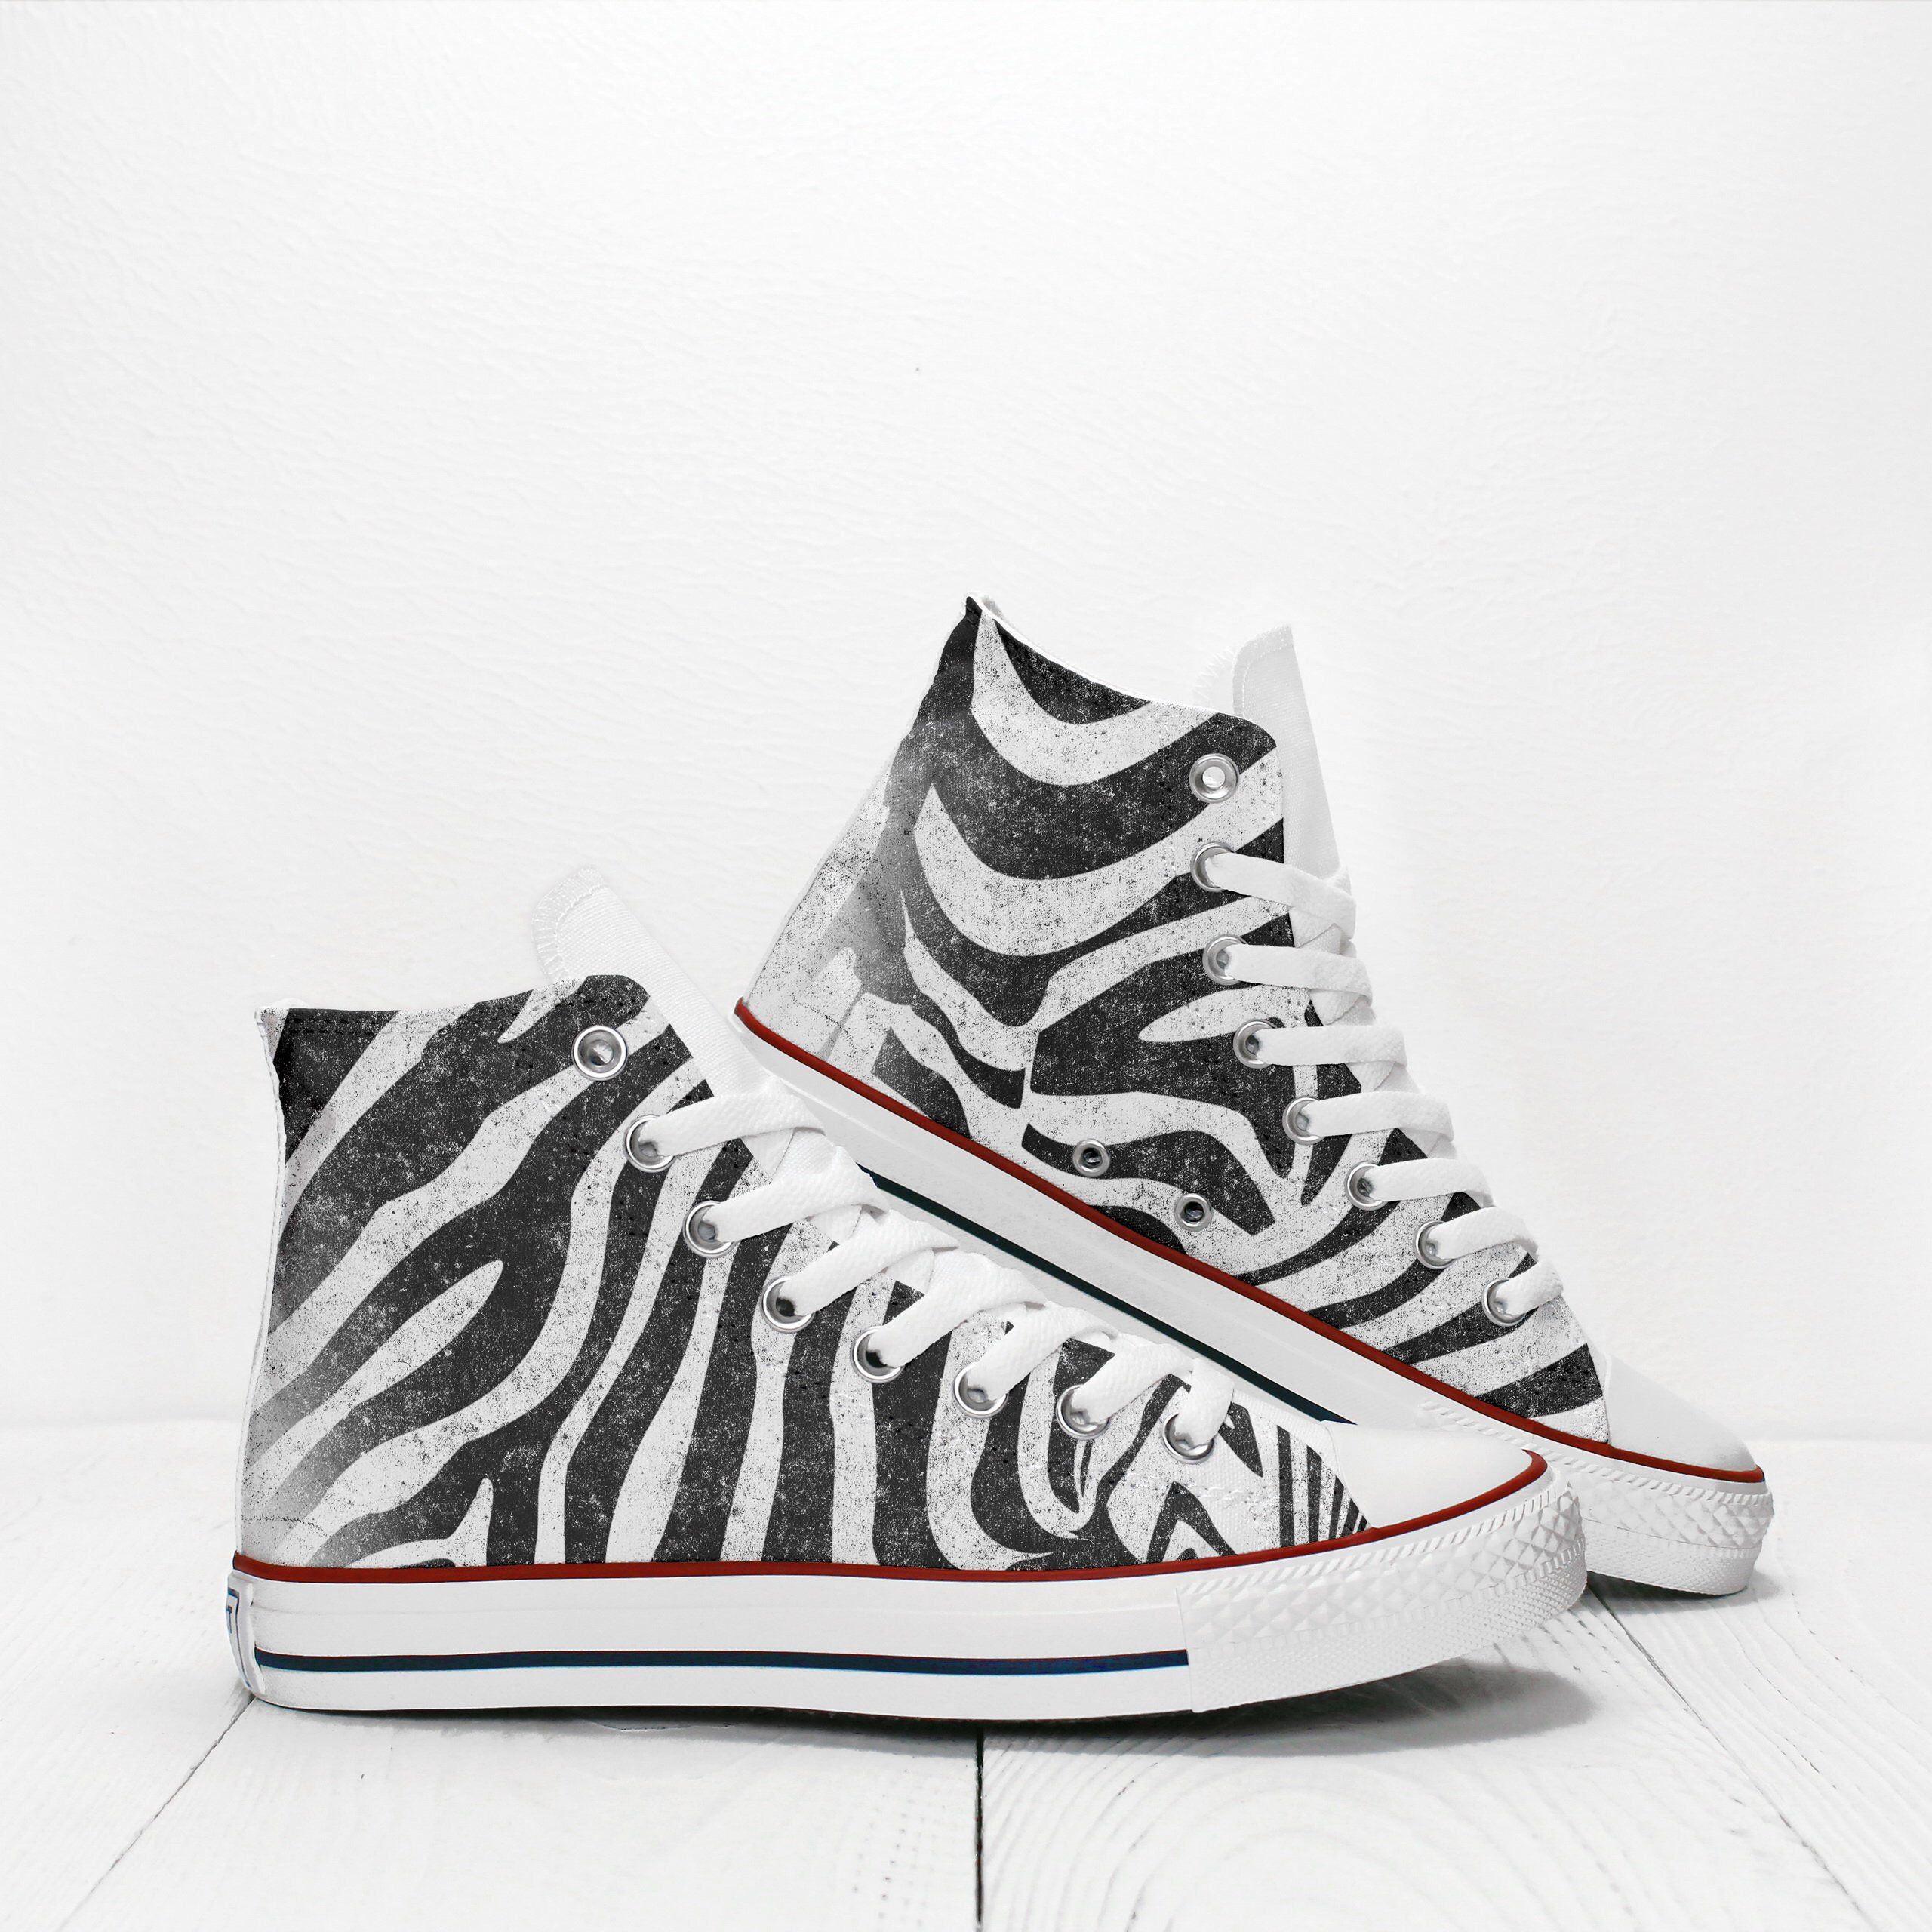 46891b9198bb Zebra Stripes Animal Print Custom Sneakers based on PROSPECT AVENUE White High  Top shoes by PerfectPairSneakers